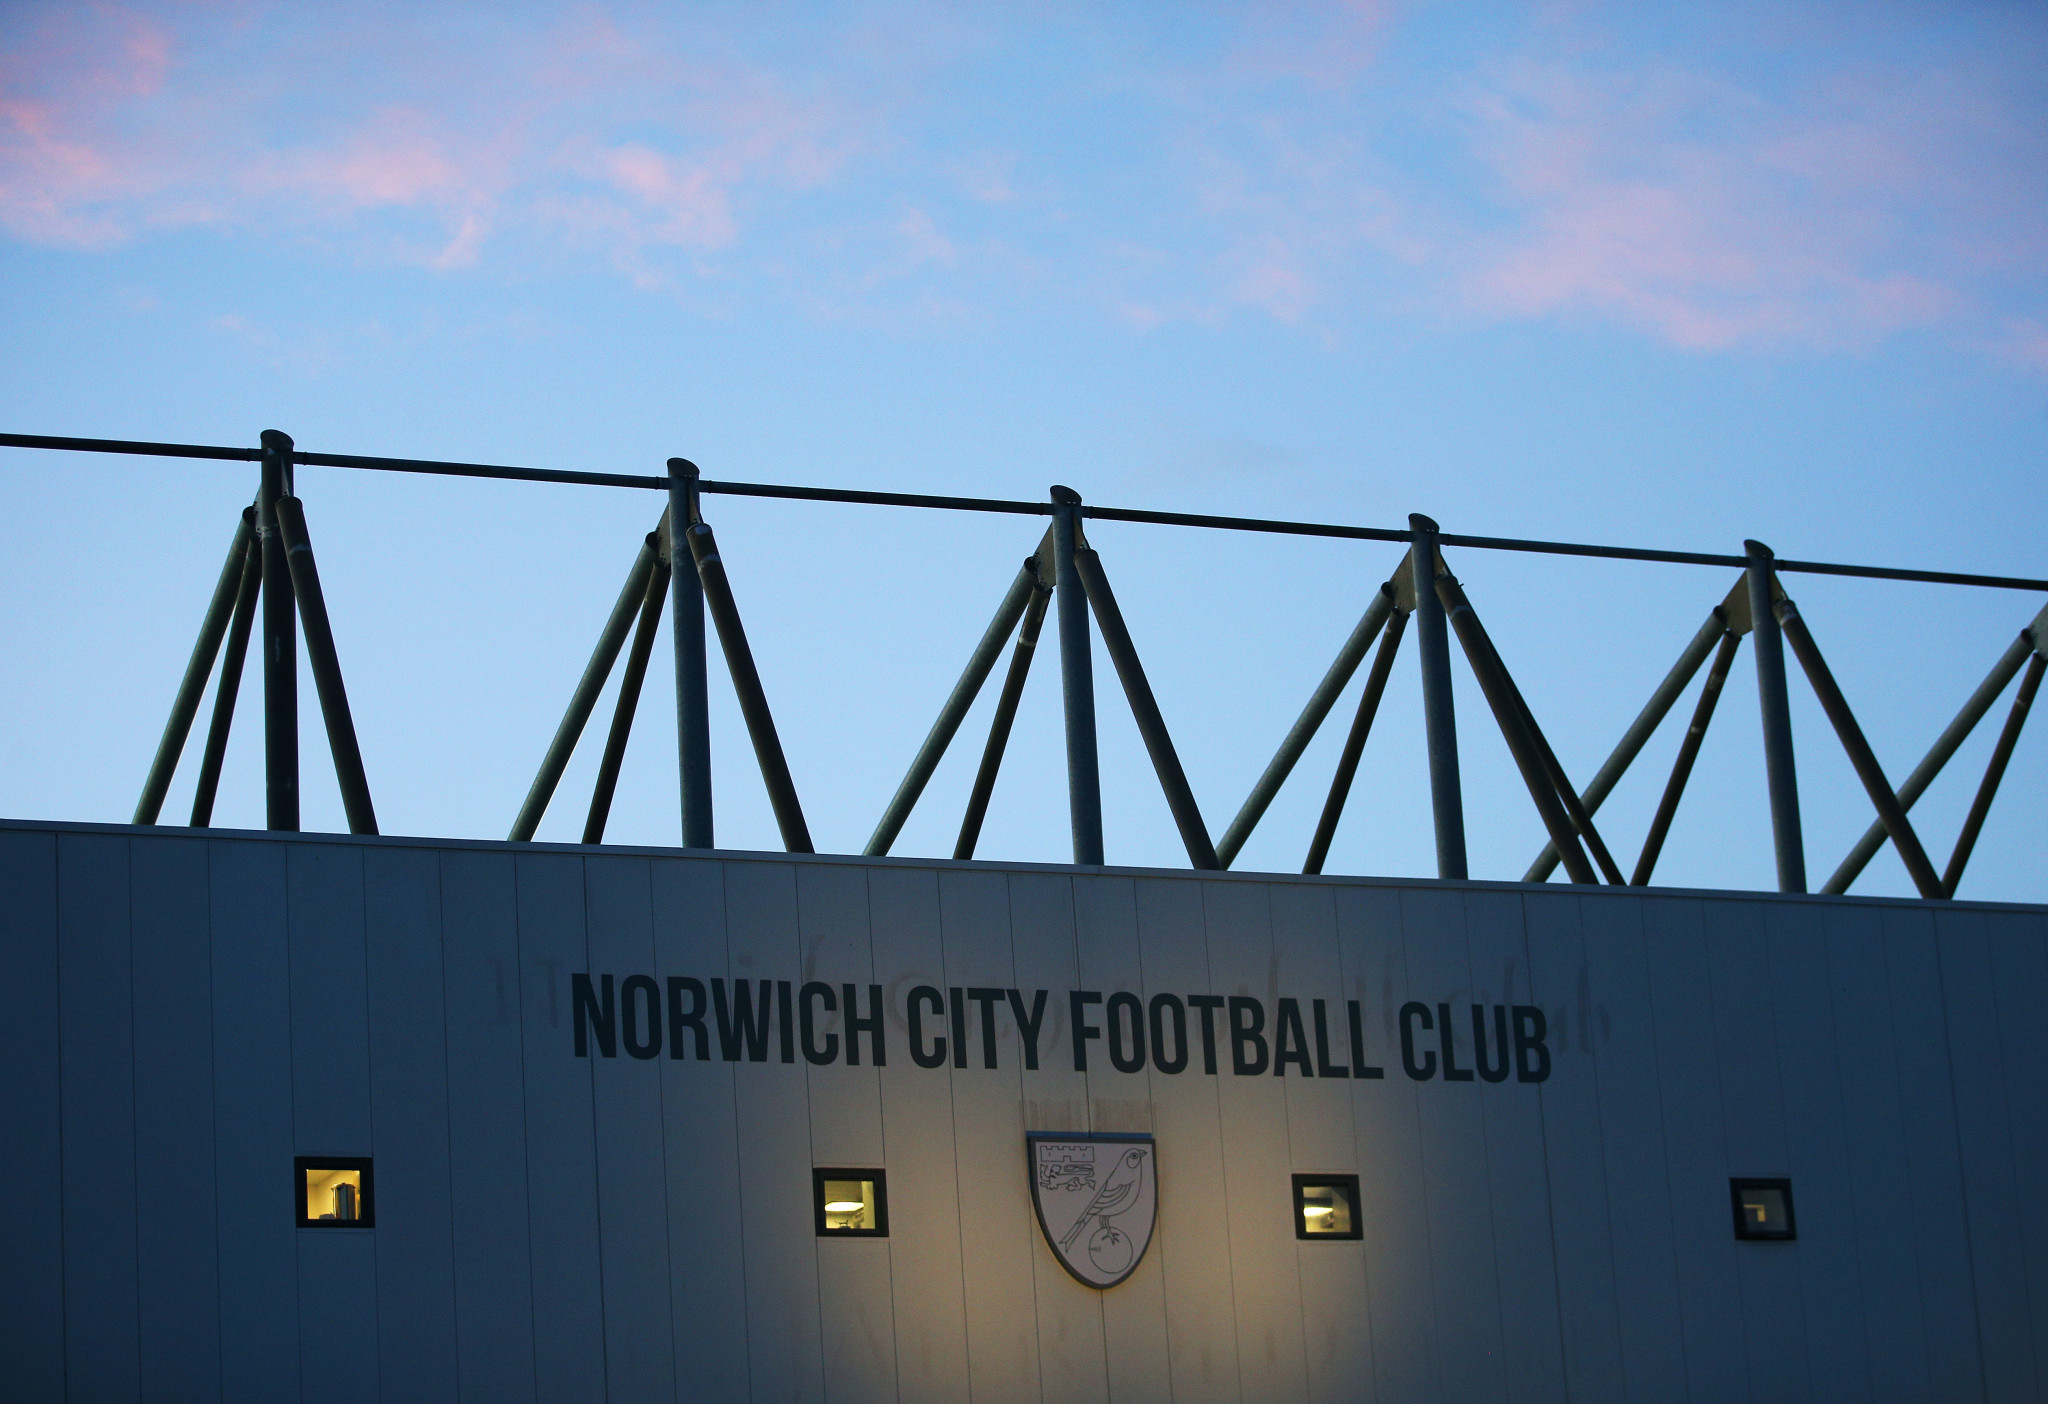 Norwich will televise matches at their ground for select fans, with the action taking place just metres away ©Getty Images